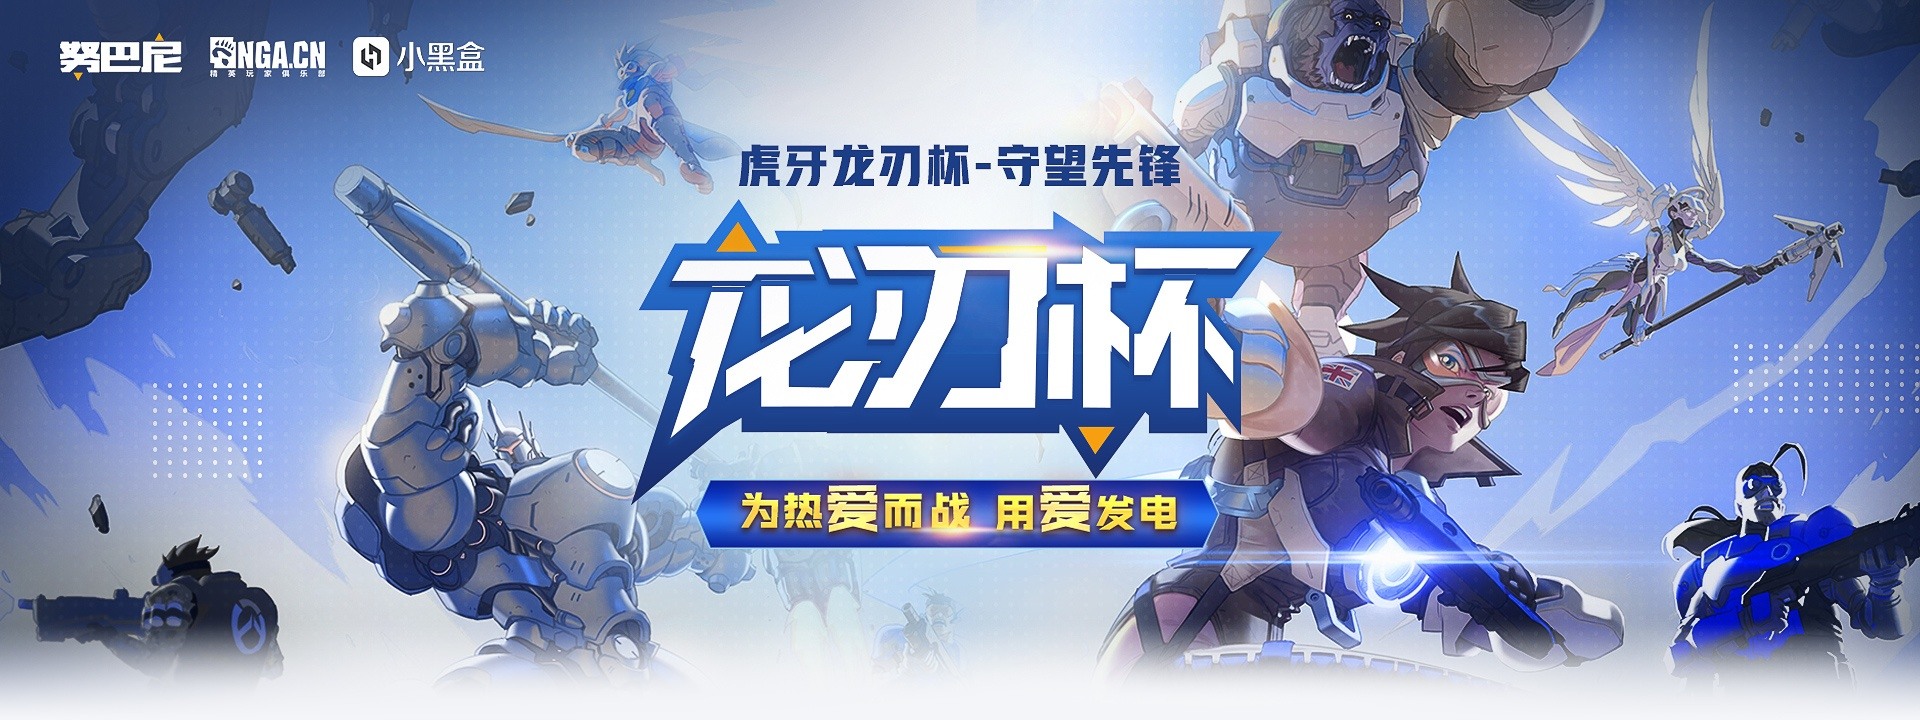 Huya Dragonblade Cup Invitational Tournament